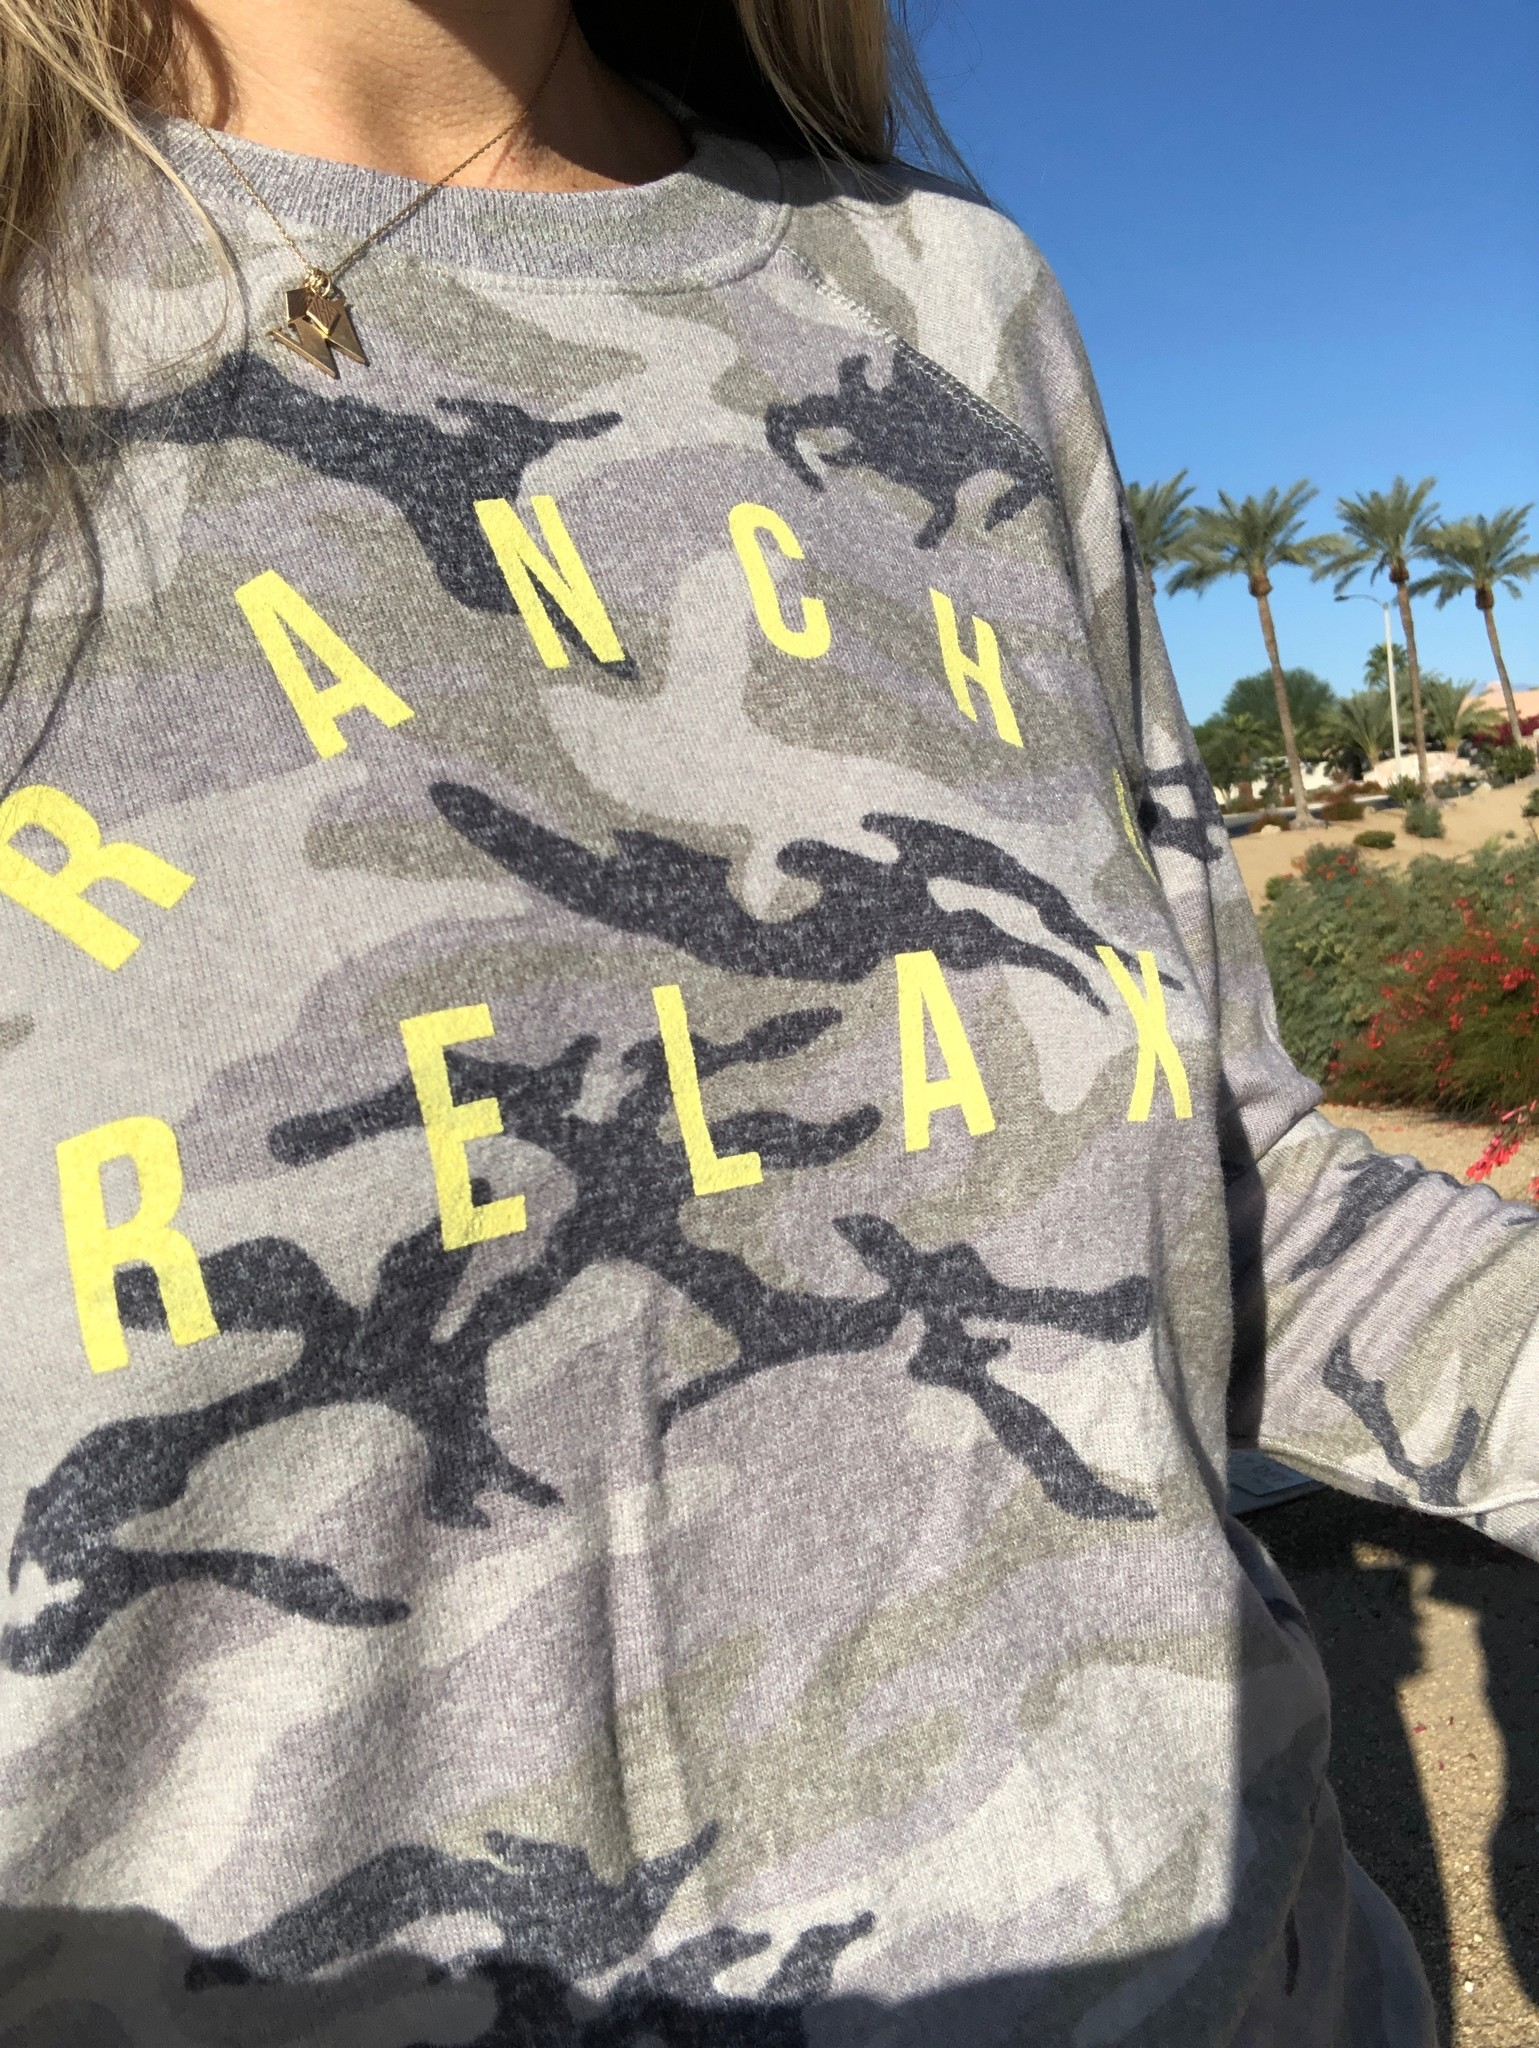 The soon to be iconic Rancho Relaxo camo pullover. LOVE the neon letters!